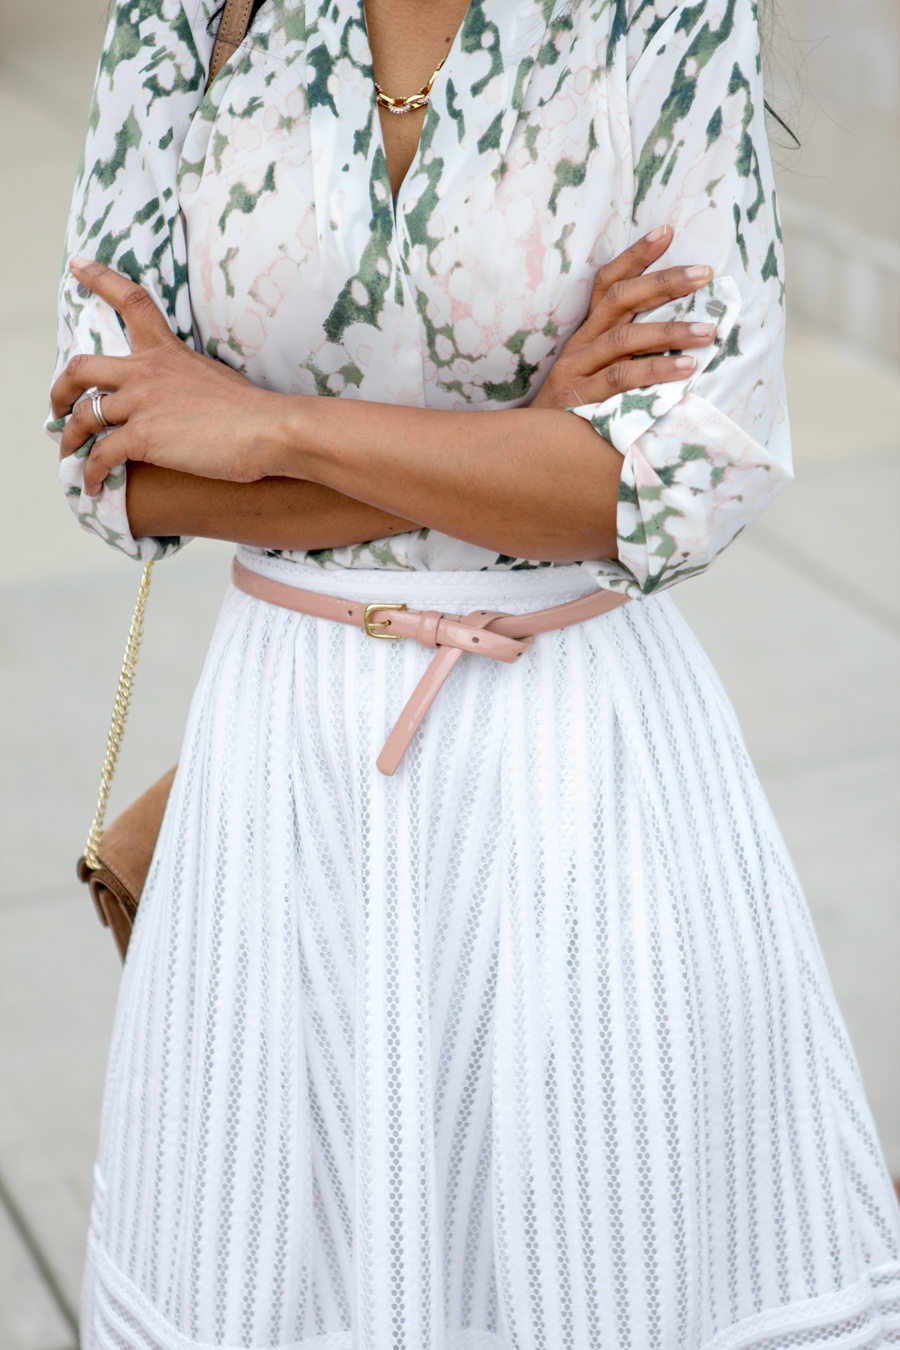 white skirt, midi skirt, look book, summer, garden print, patent leather blush, pink belt, skinny belt, camel shoulder bag, budget fashion, straw hat, how tos, outfit formula, style blog, target style